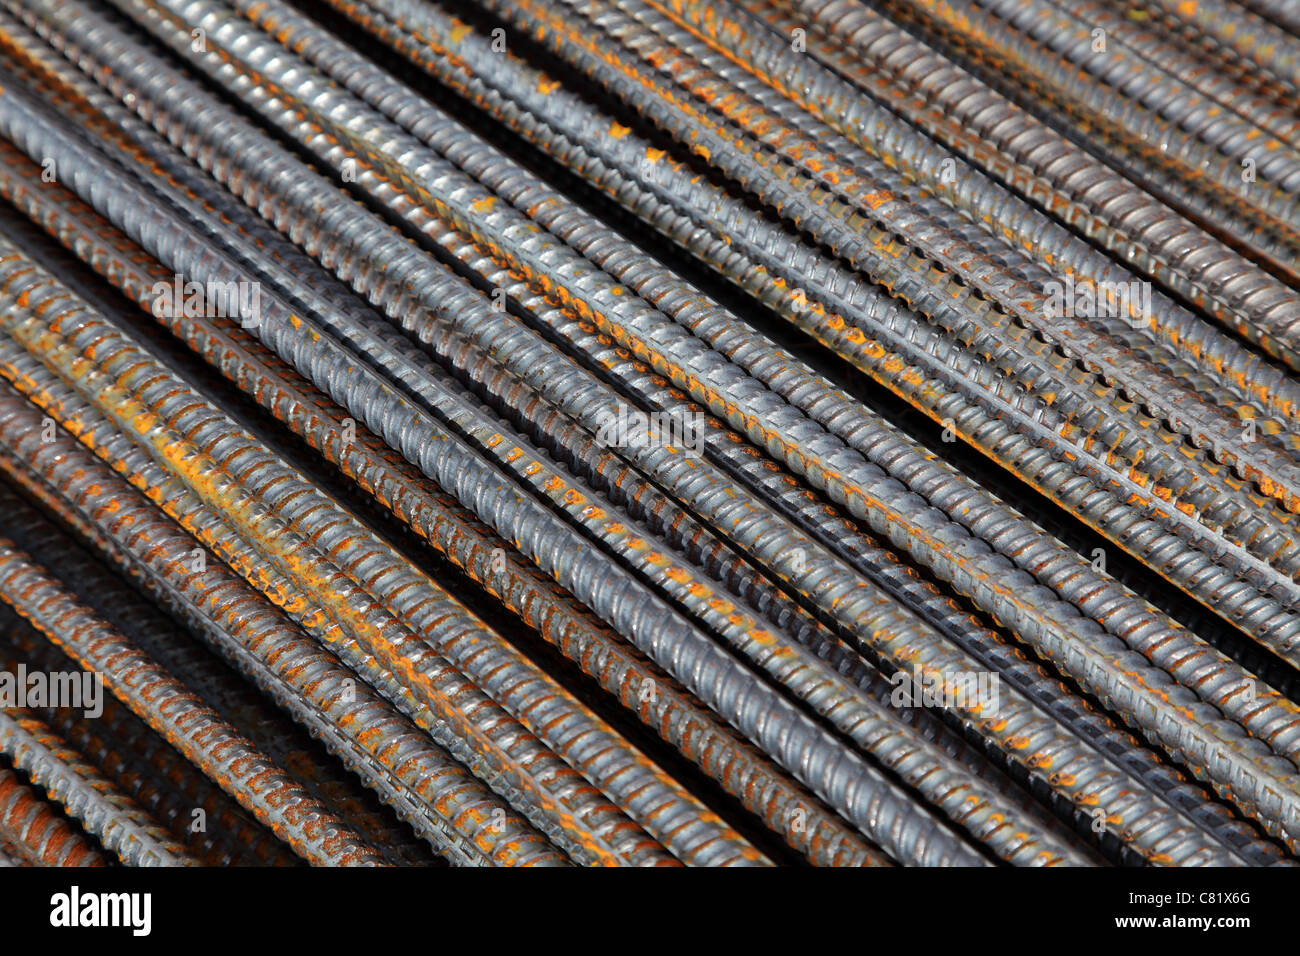 reinforcement bar - Stock Image